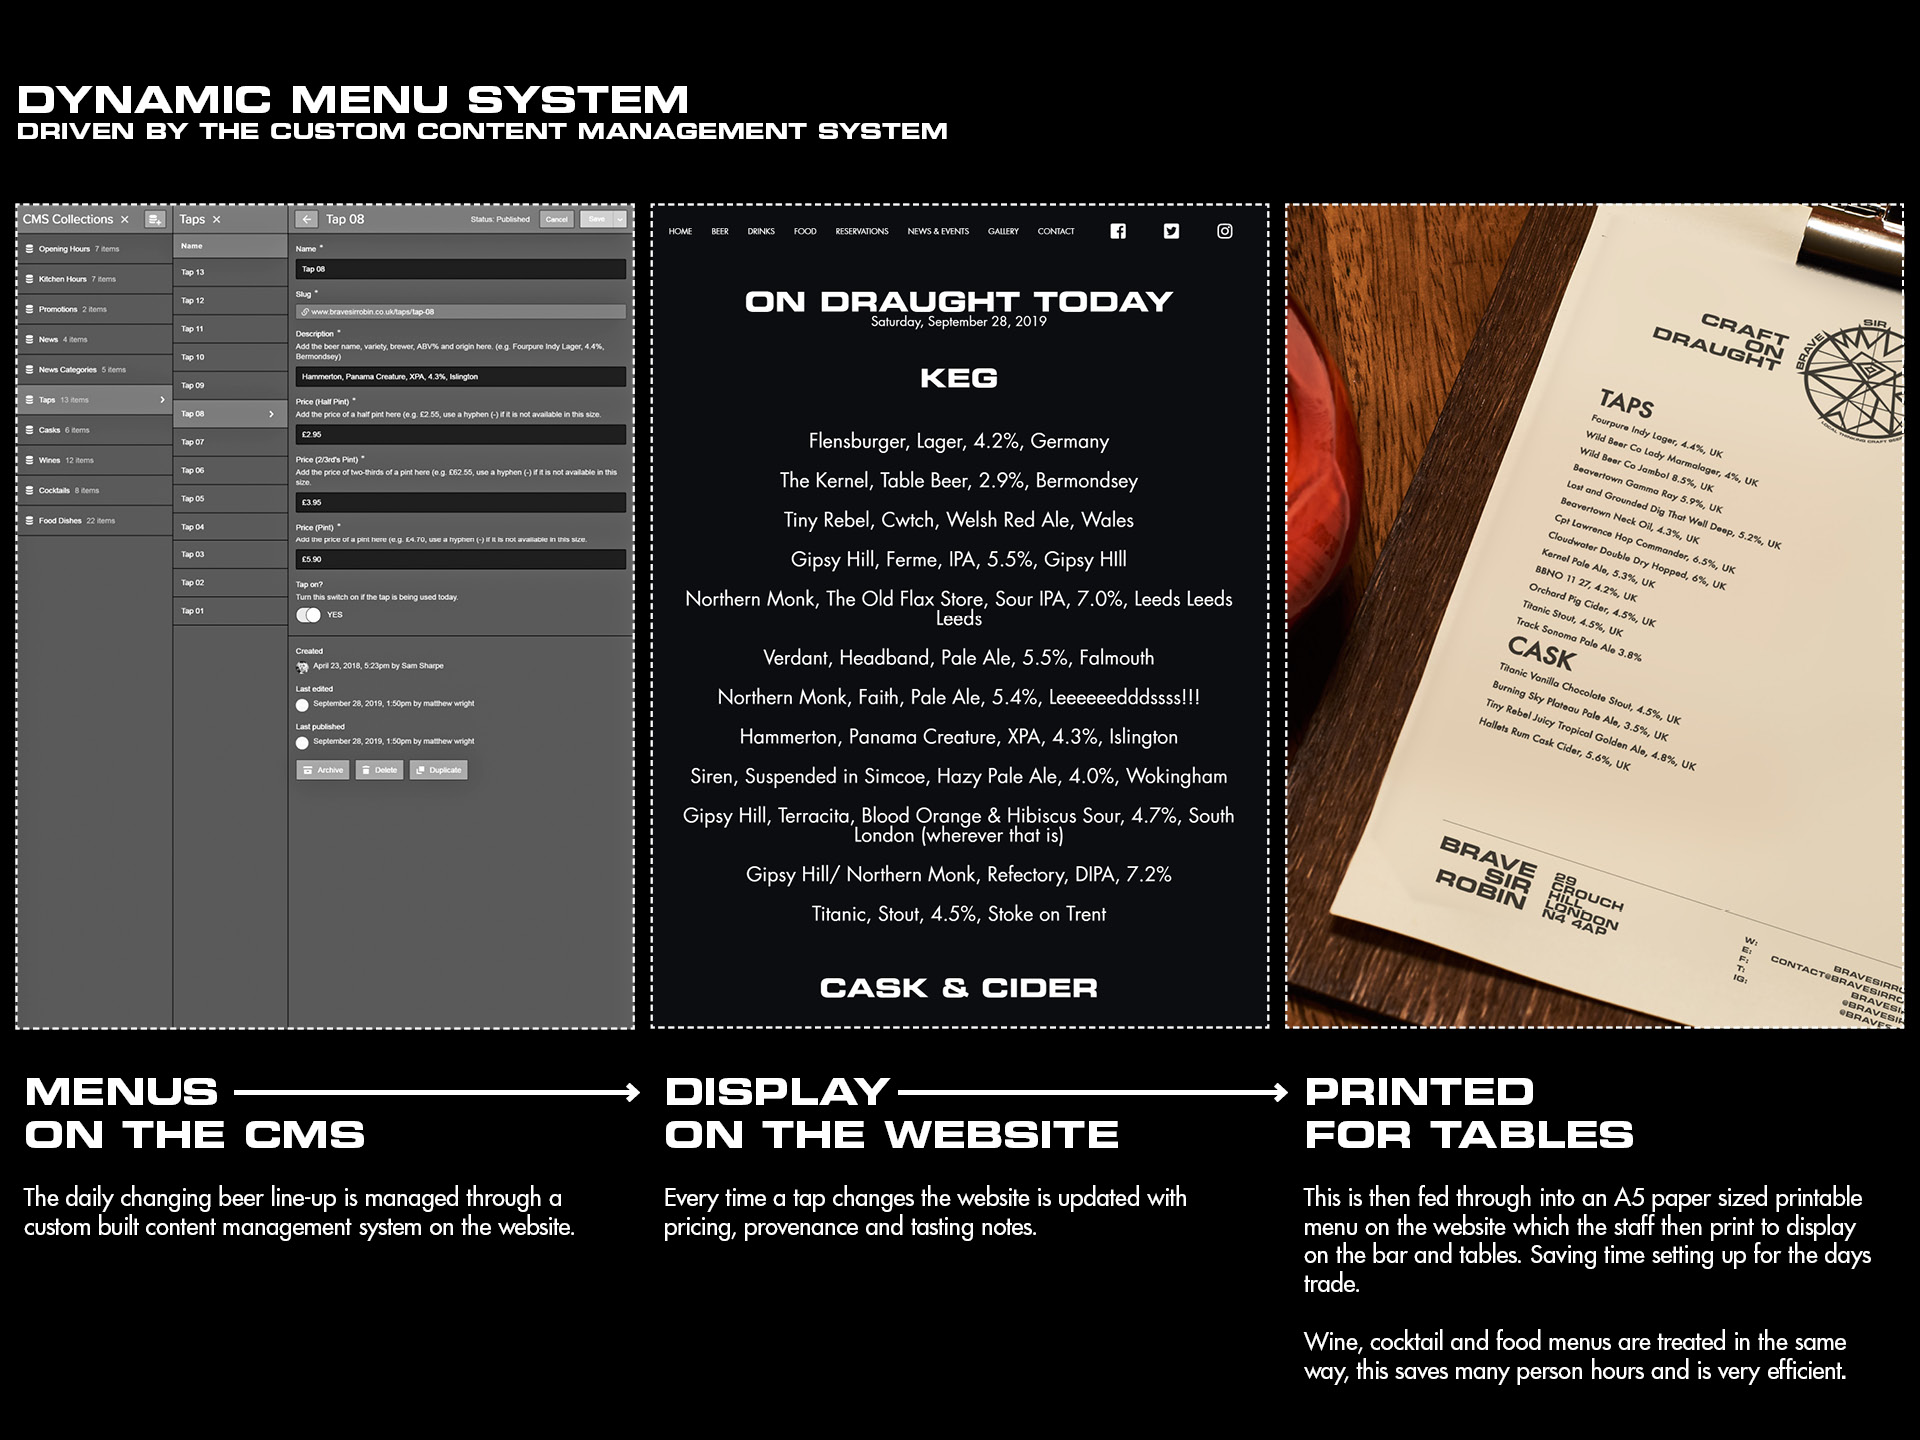 Dynamic CMS driven drinks and food menus for website and print display